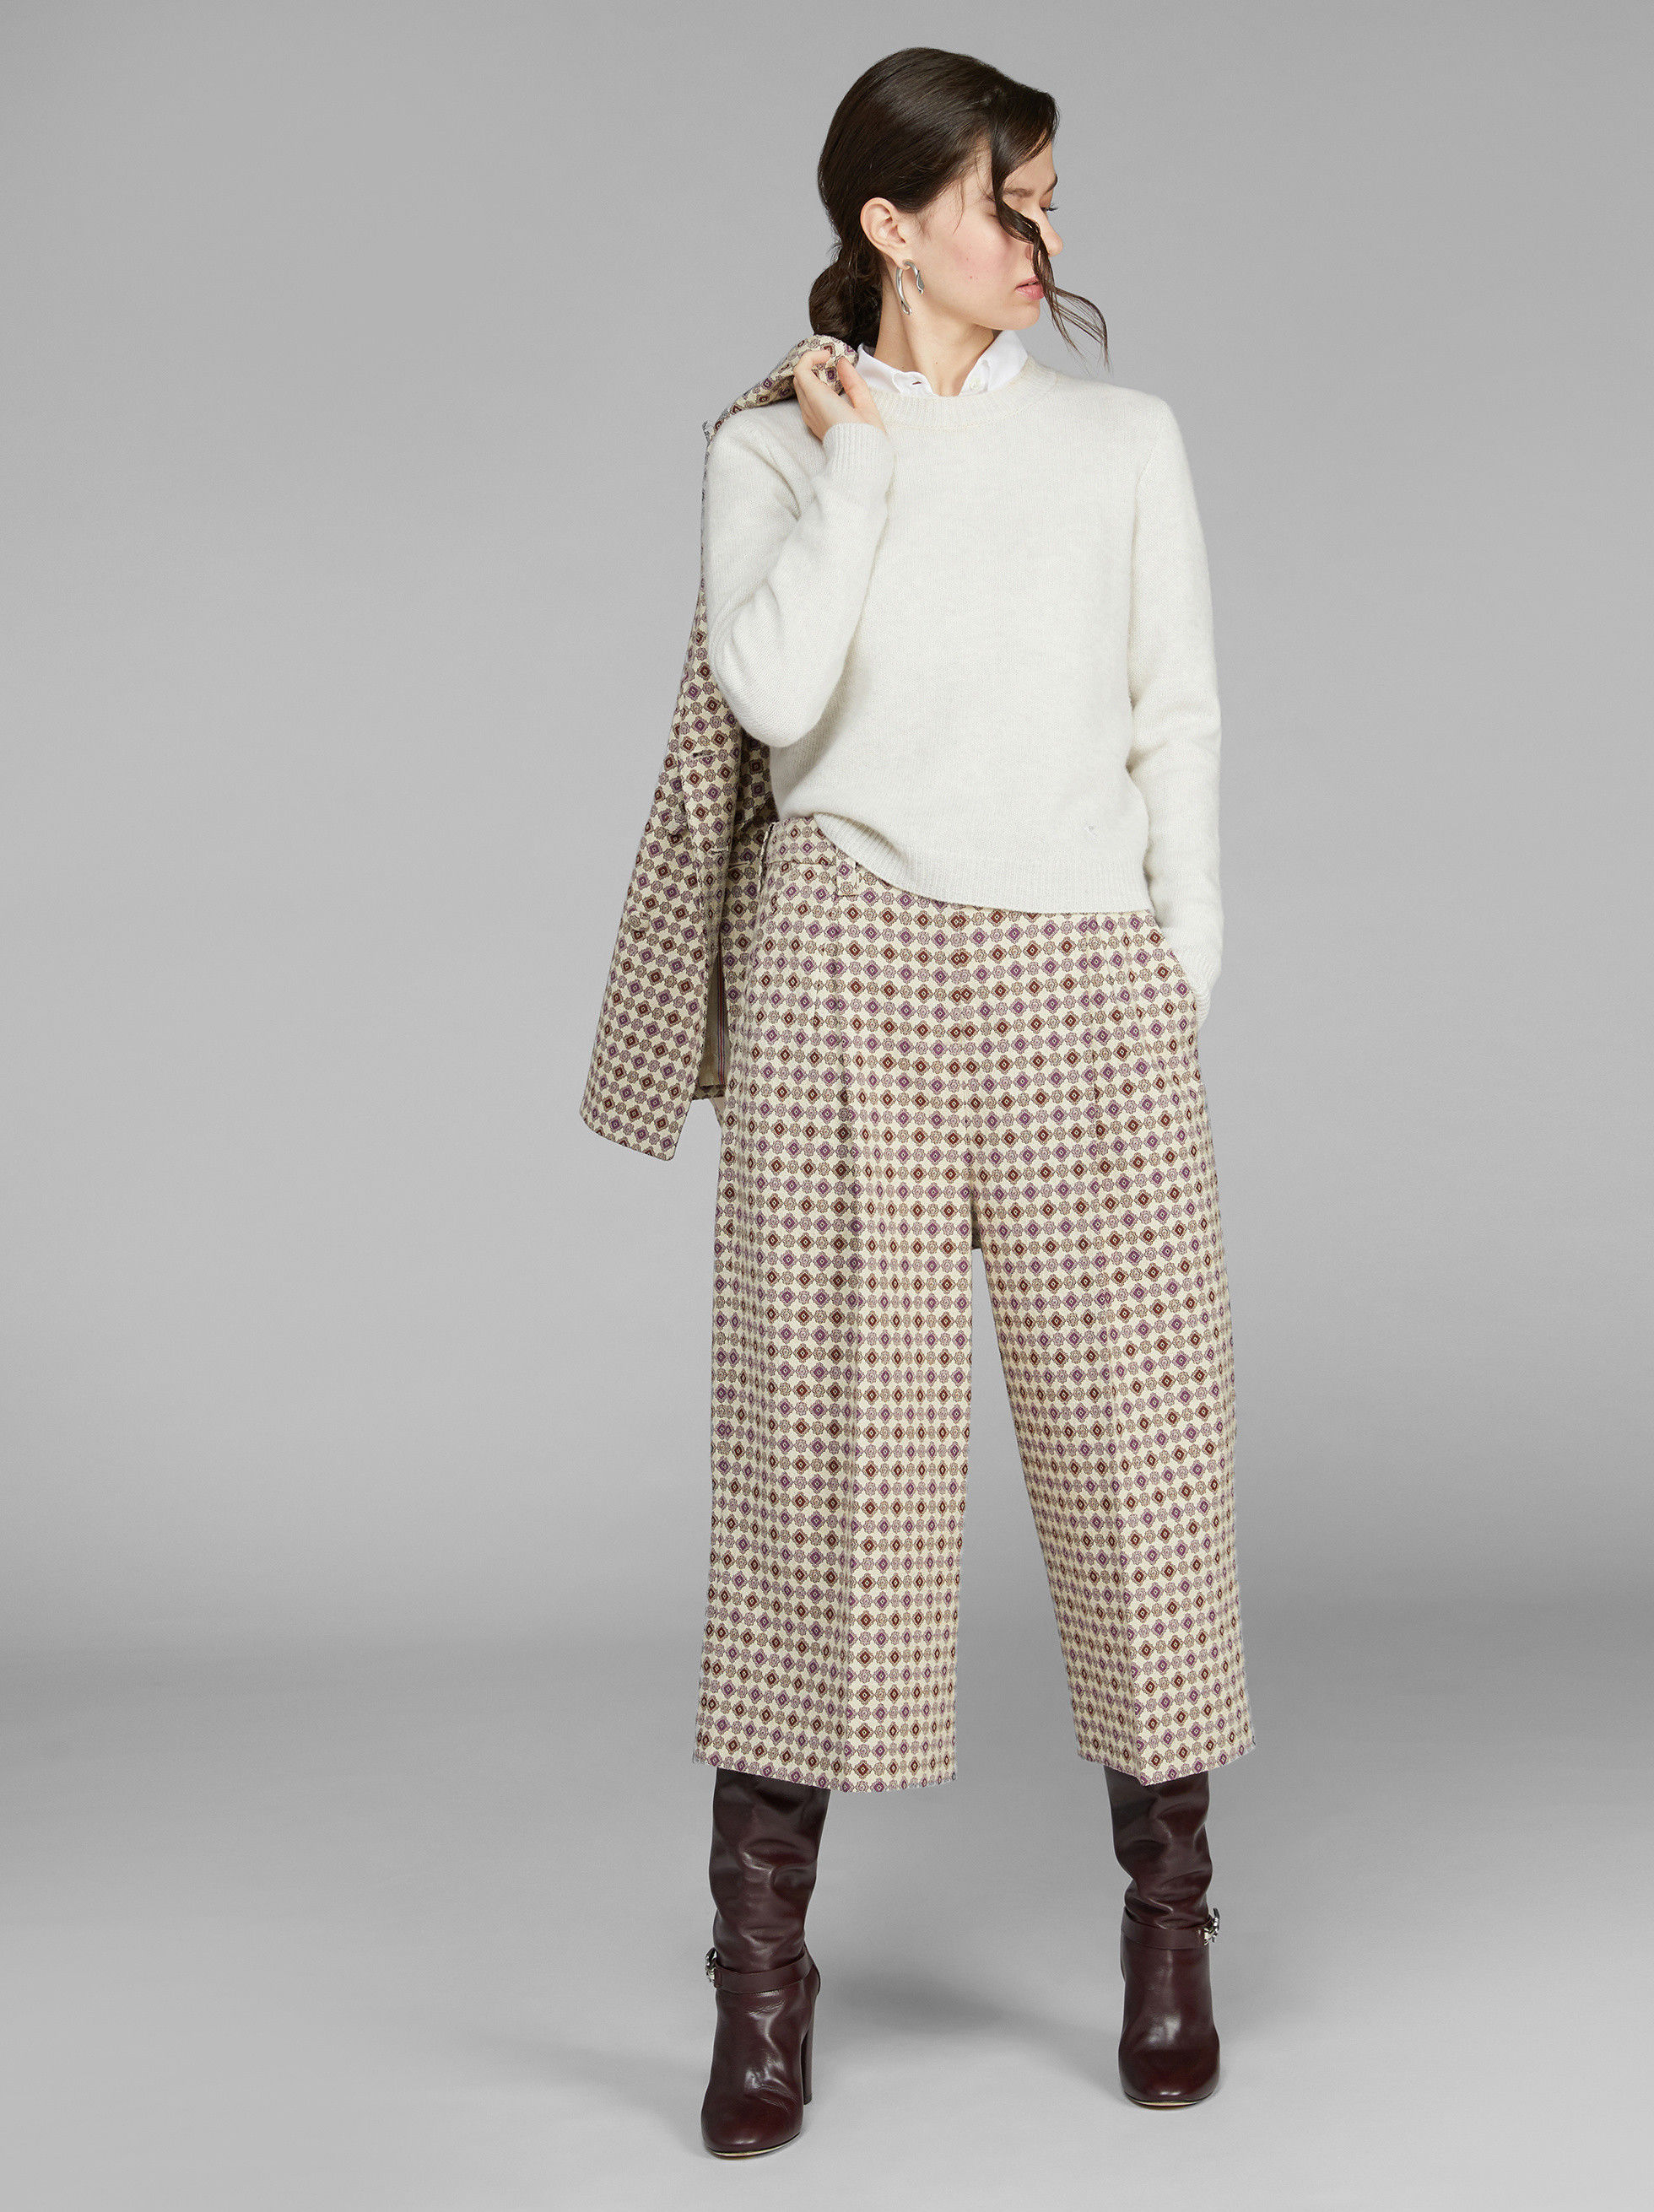 TIE FABRIC PRINT CULOTTES